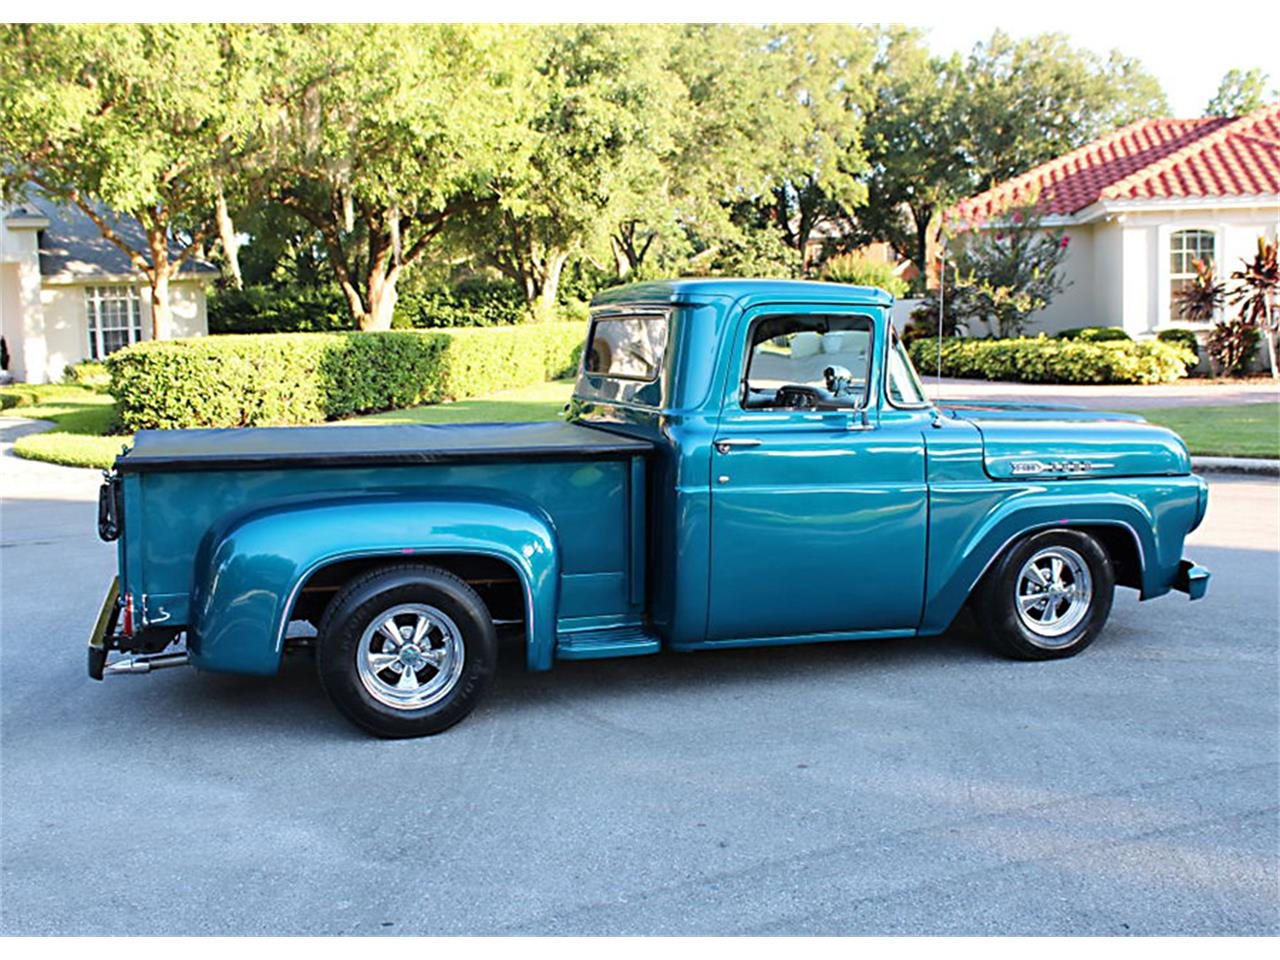 Large Picture of Classic '59 Ford F100 located in Lakeland Florida - $29,500.00 - QAHS